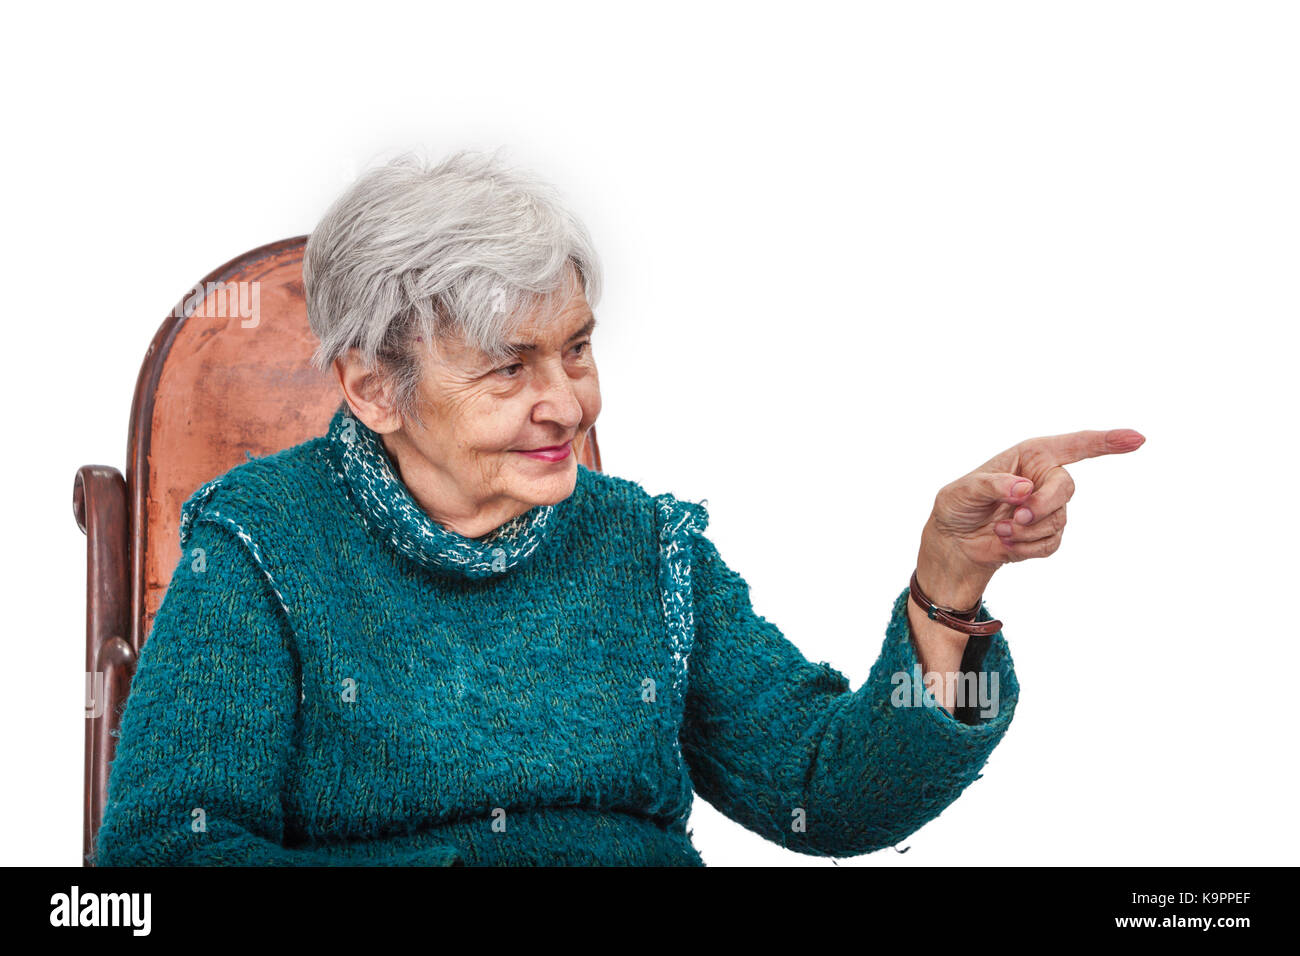 Old woman poiting her left finger to something and looking to it, isolated against a white background. - Stock Image